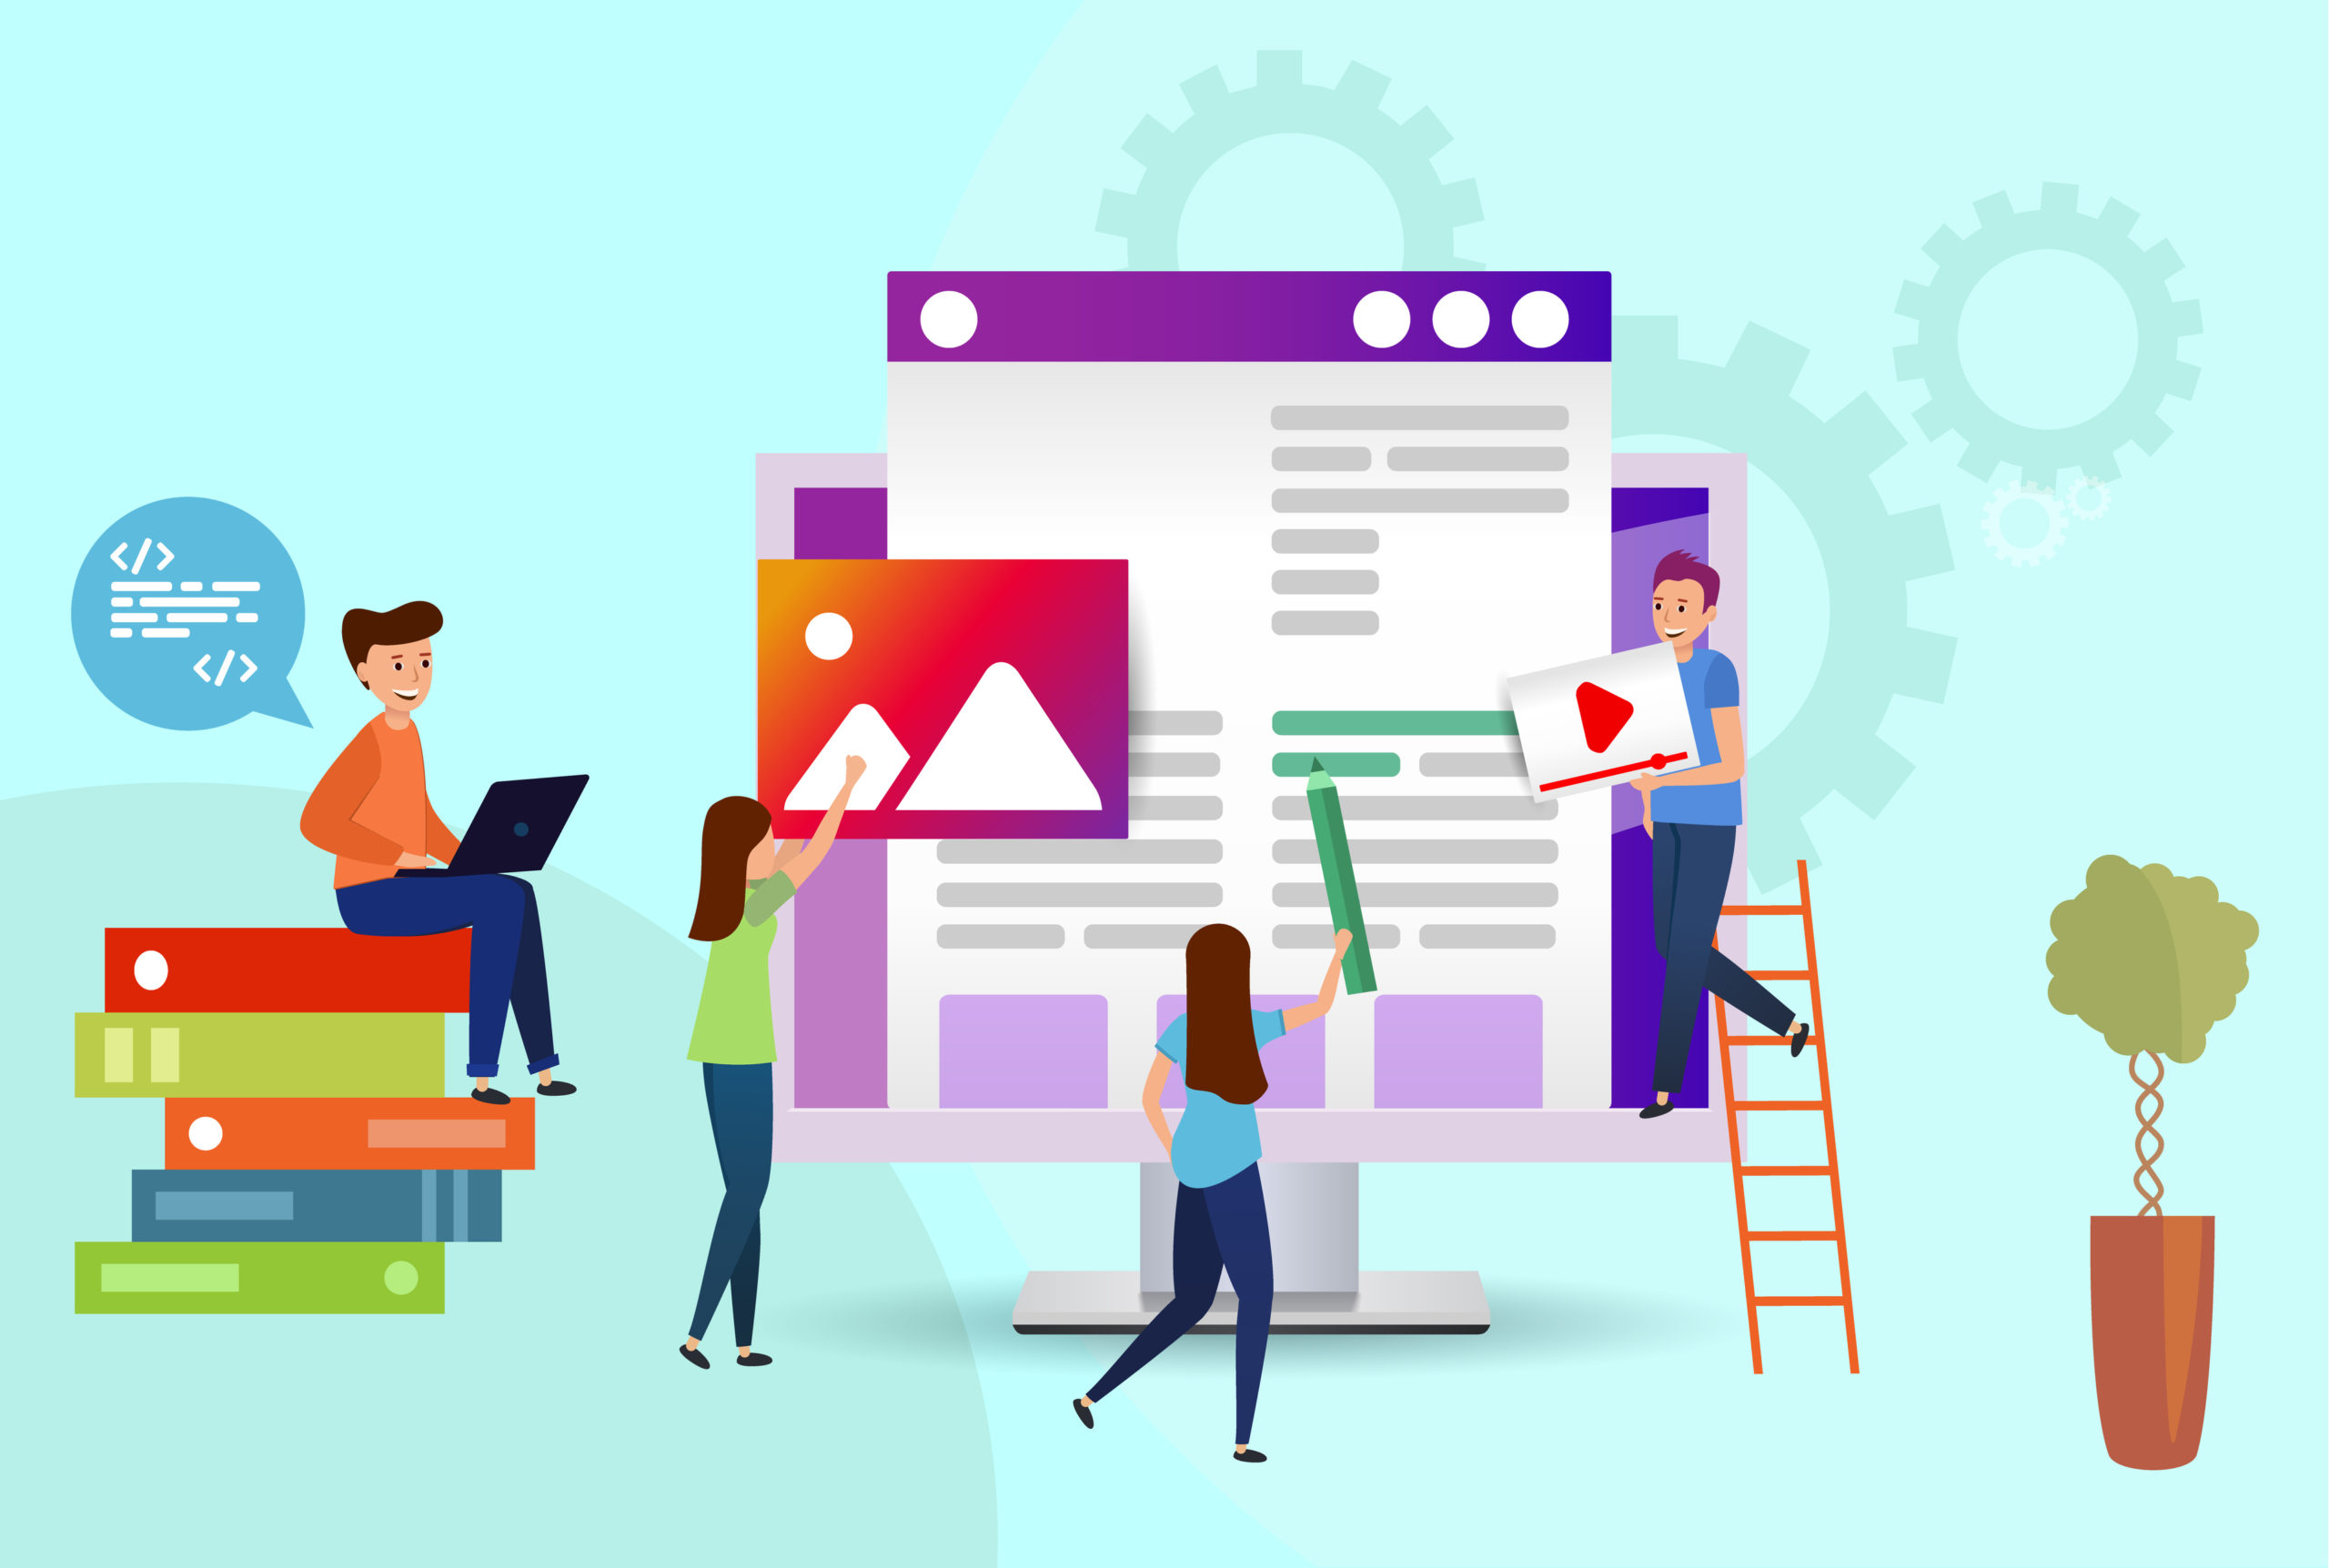 Team of people creates a website. Programmers, designers, video editors, copywriters. Illustration design Landing page. Young men and women on ultraviolet background.